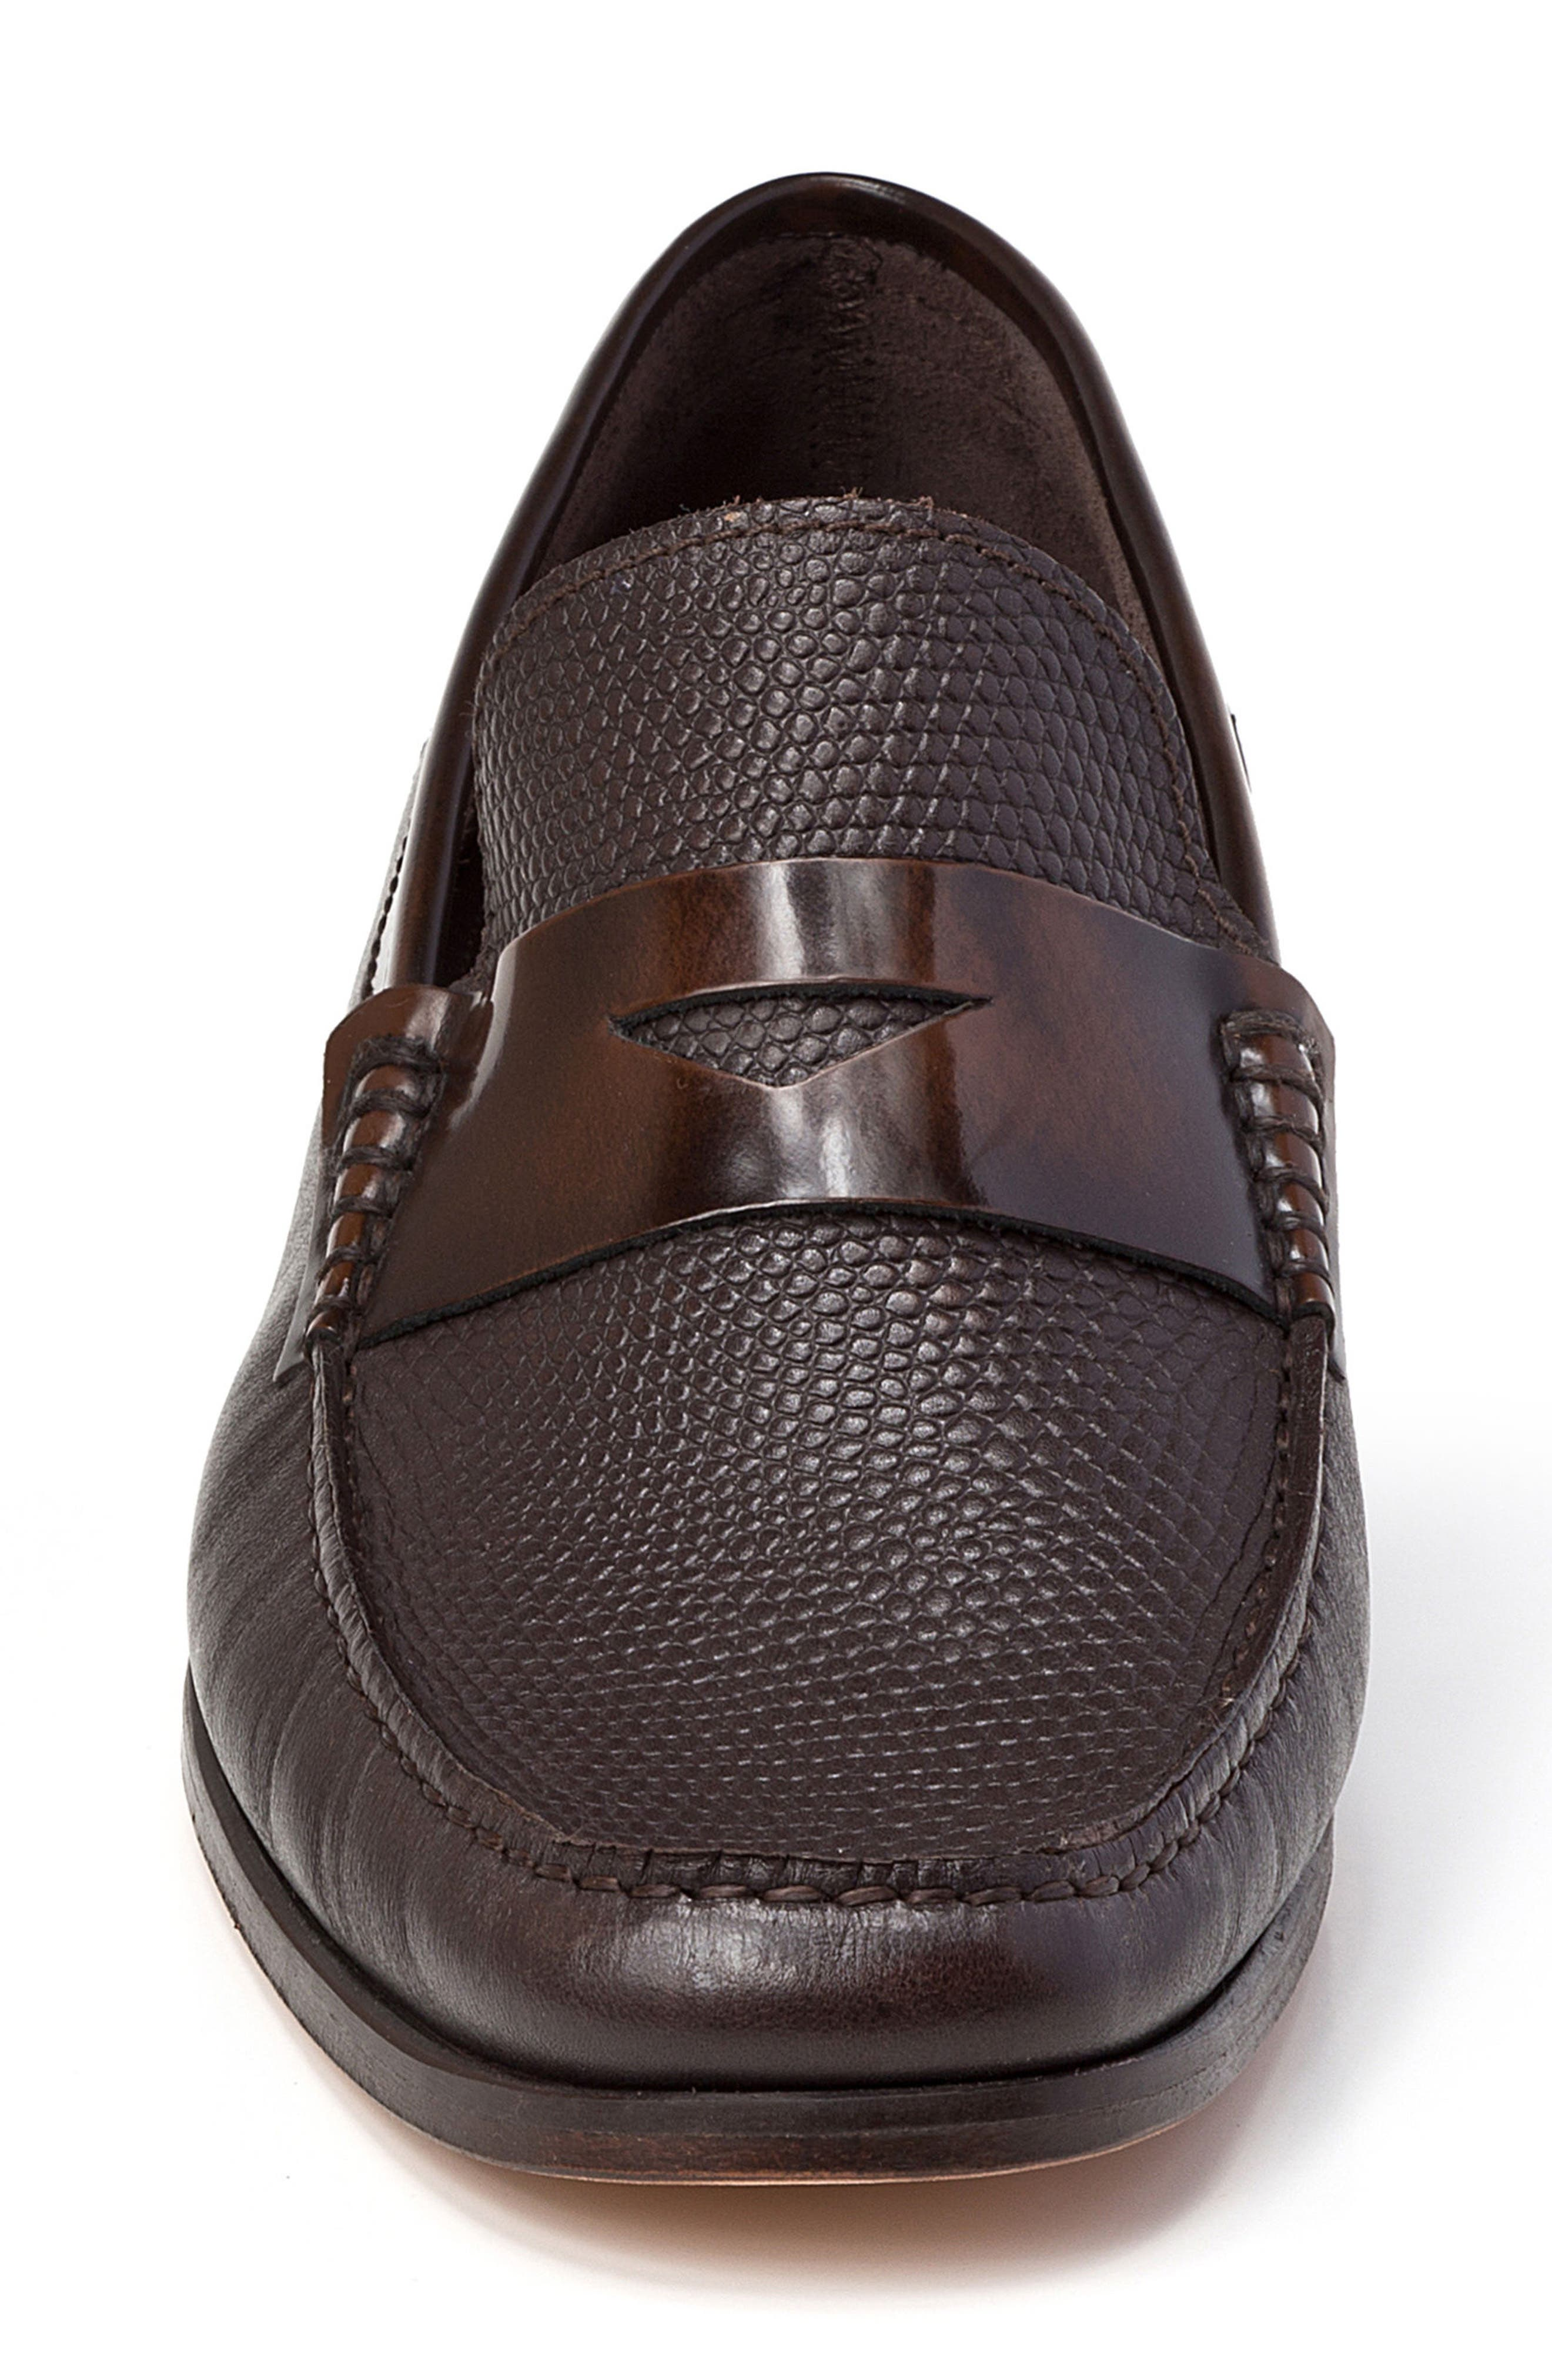 Bilbao Pebble Embossed Penny Loafer,                             Alternate thumbnail 4, color,                             BROWN